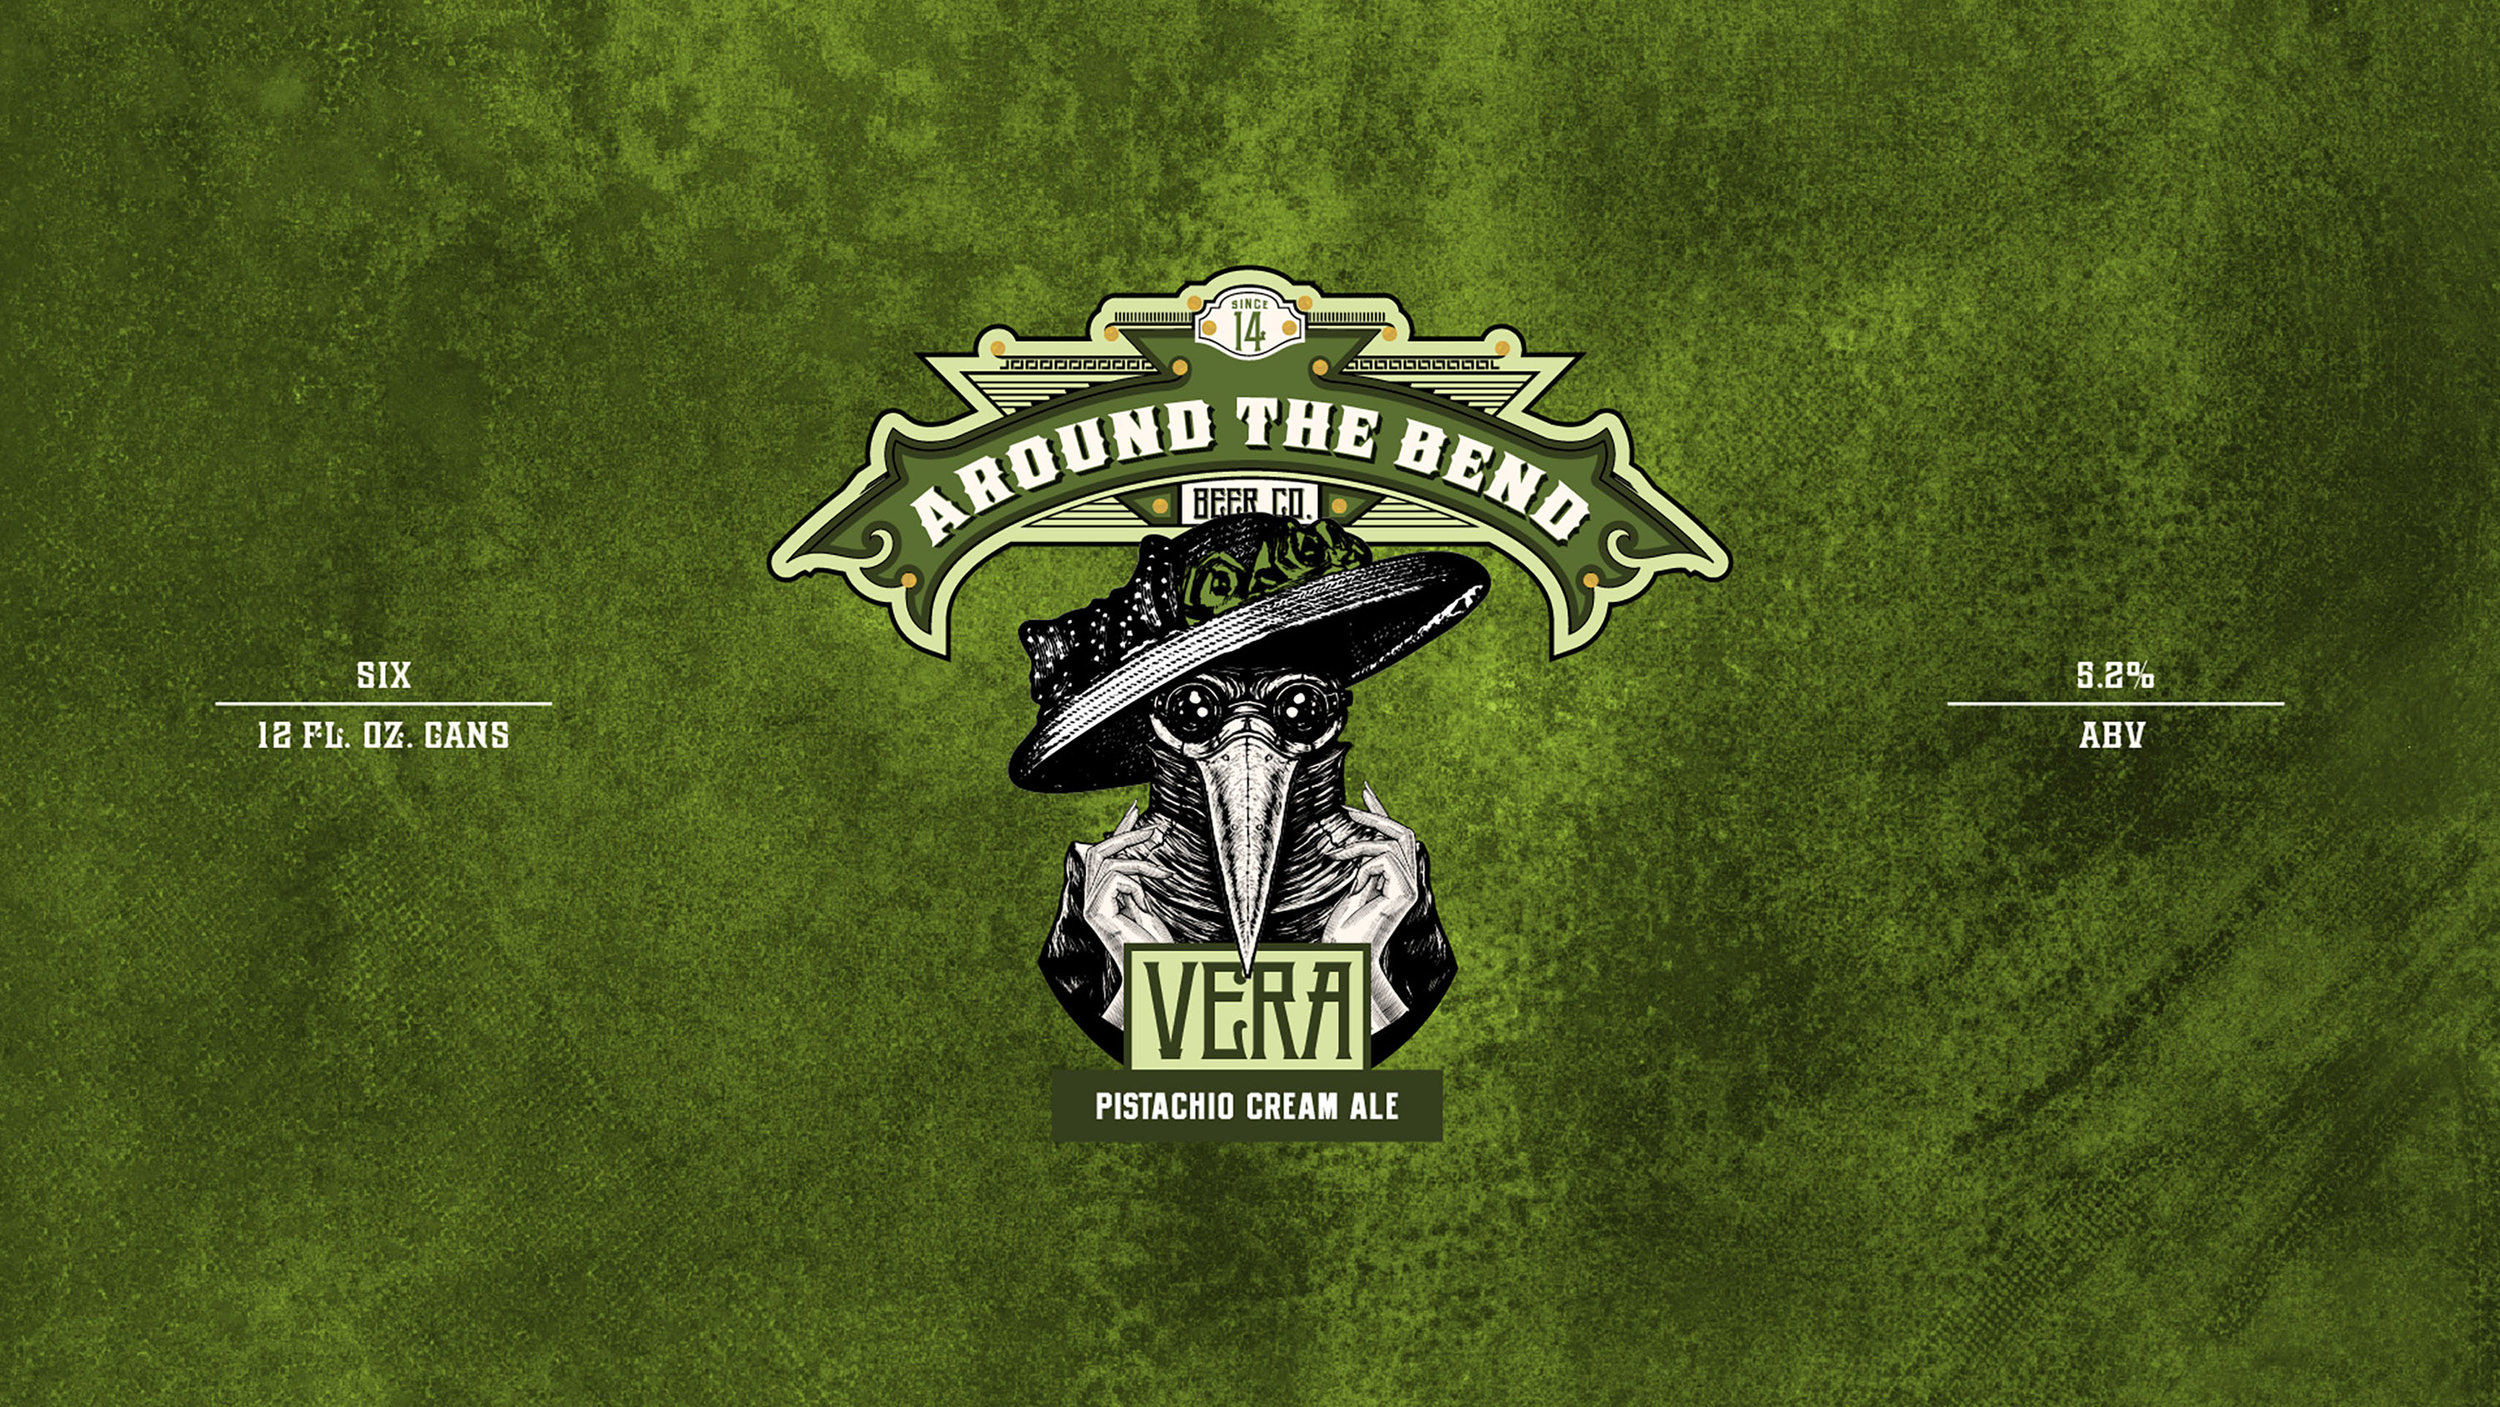 GERTRUDE-INC-ATB-Beer-Co-Brand-Sheet-Vera-ABV.jpg